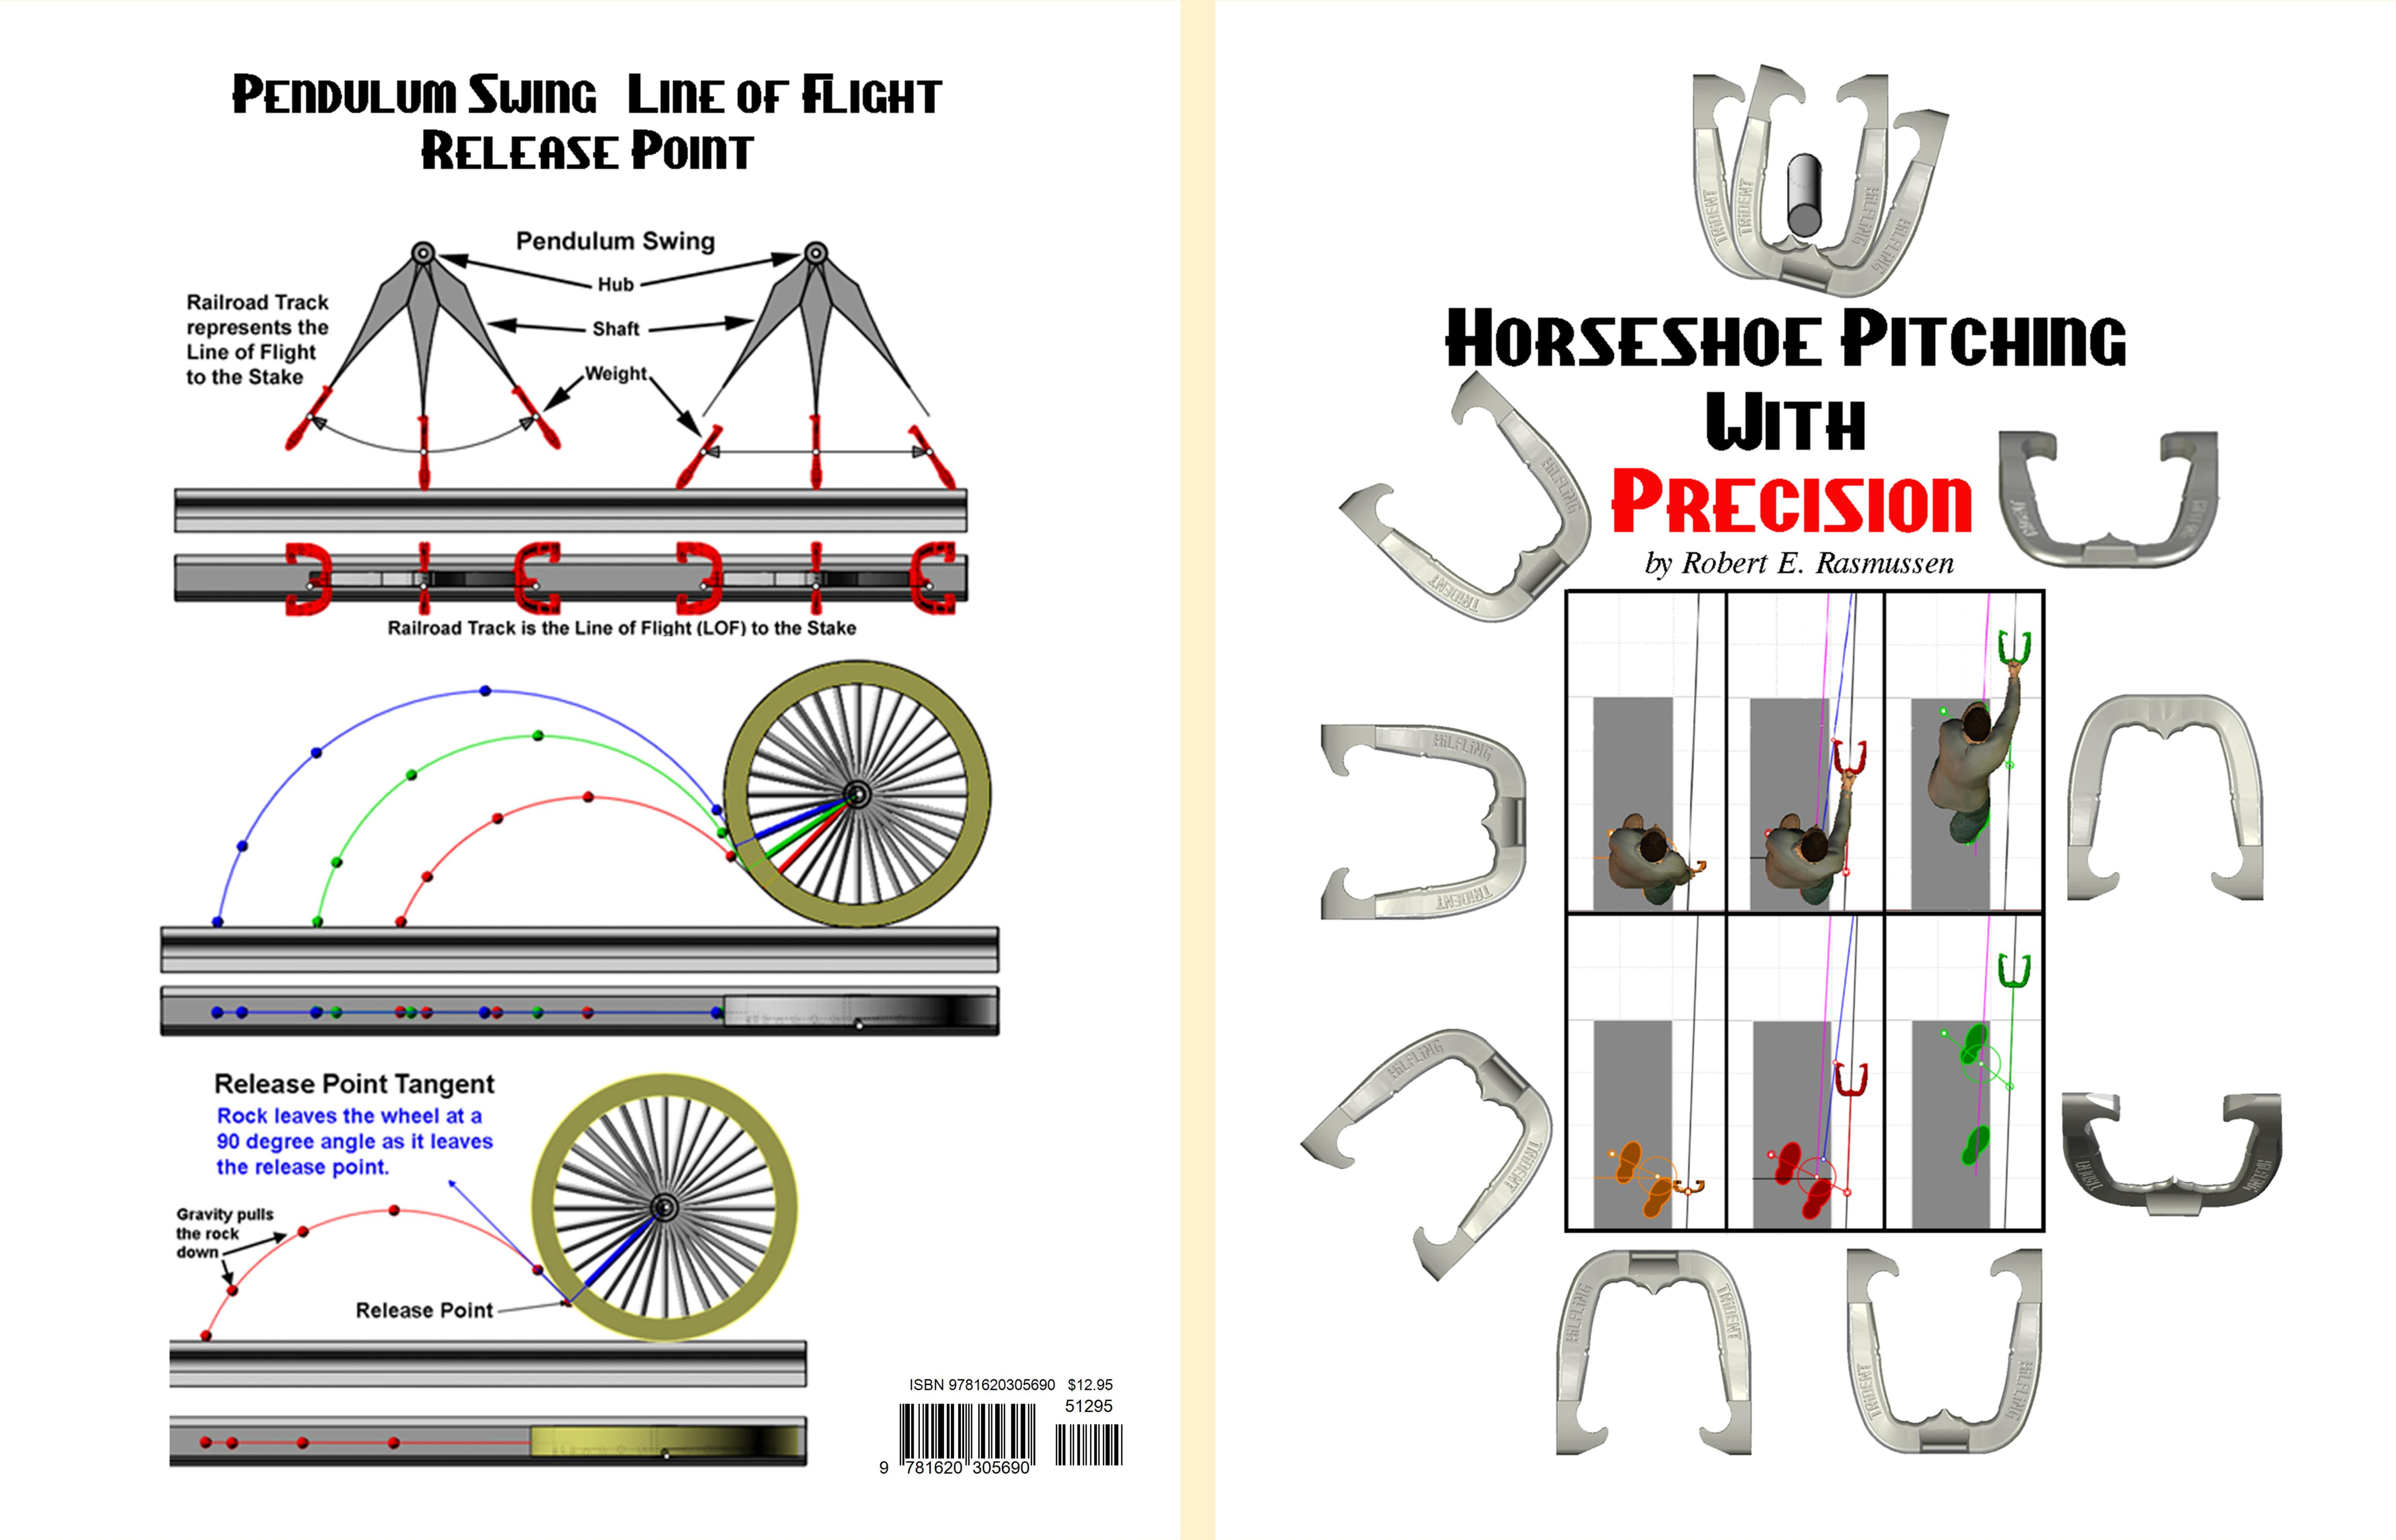 Horseshoe Pitching With Precision cover image